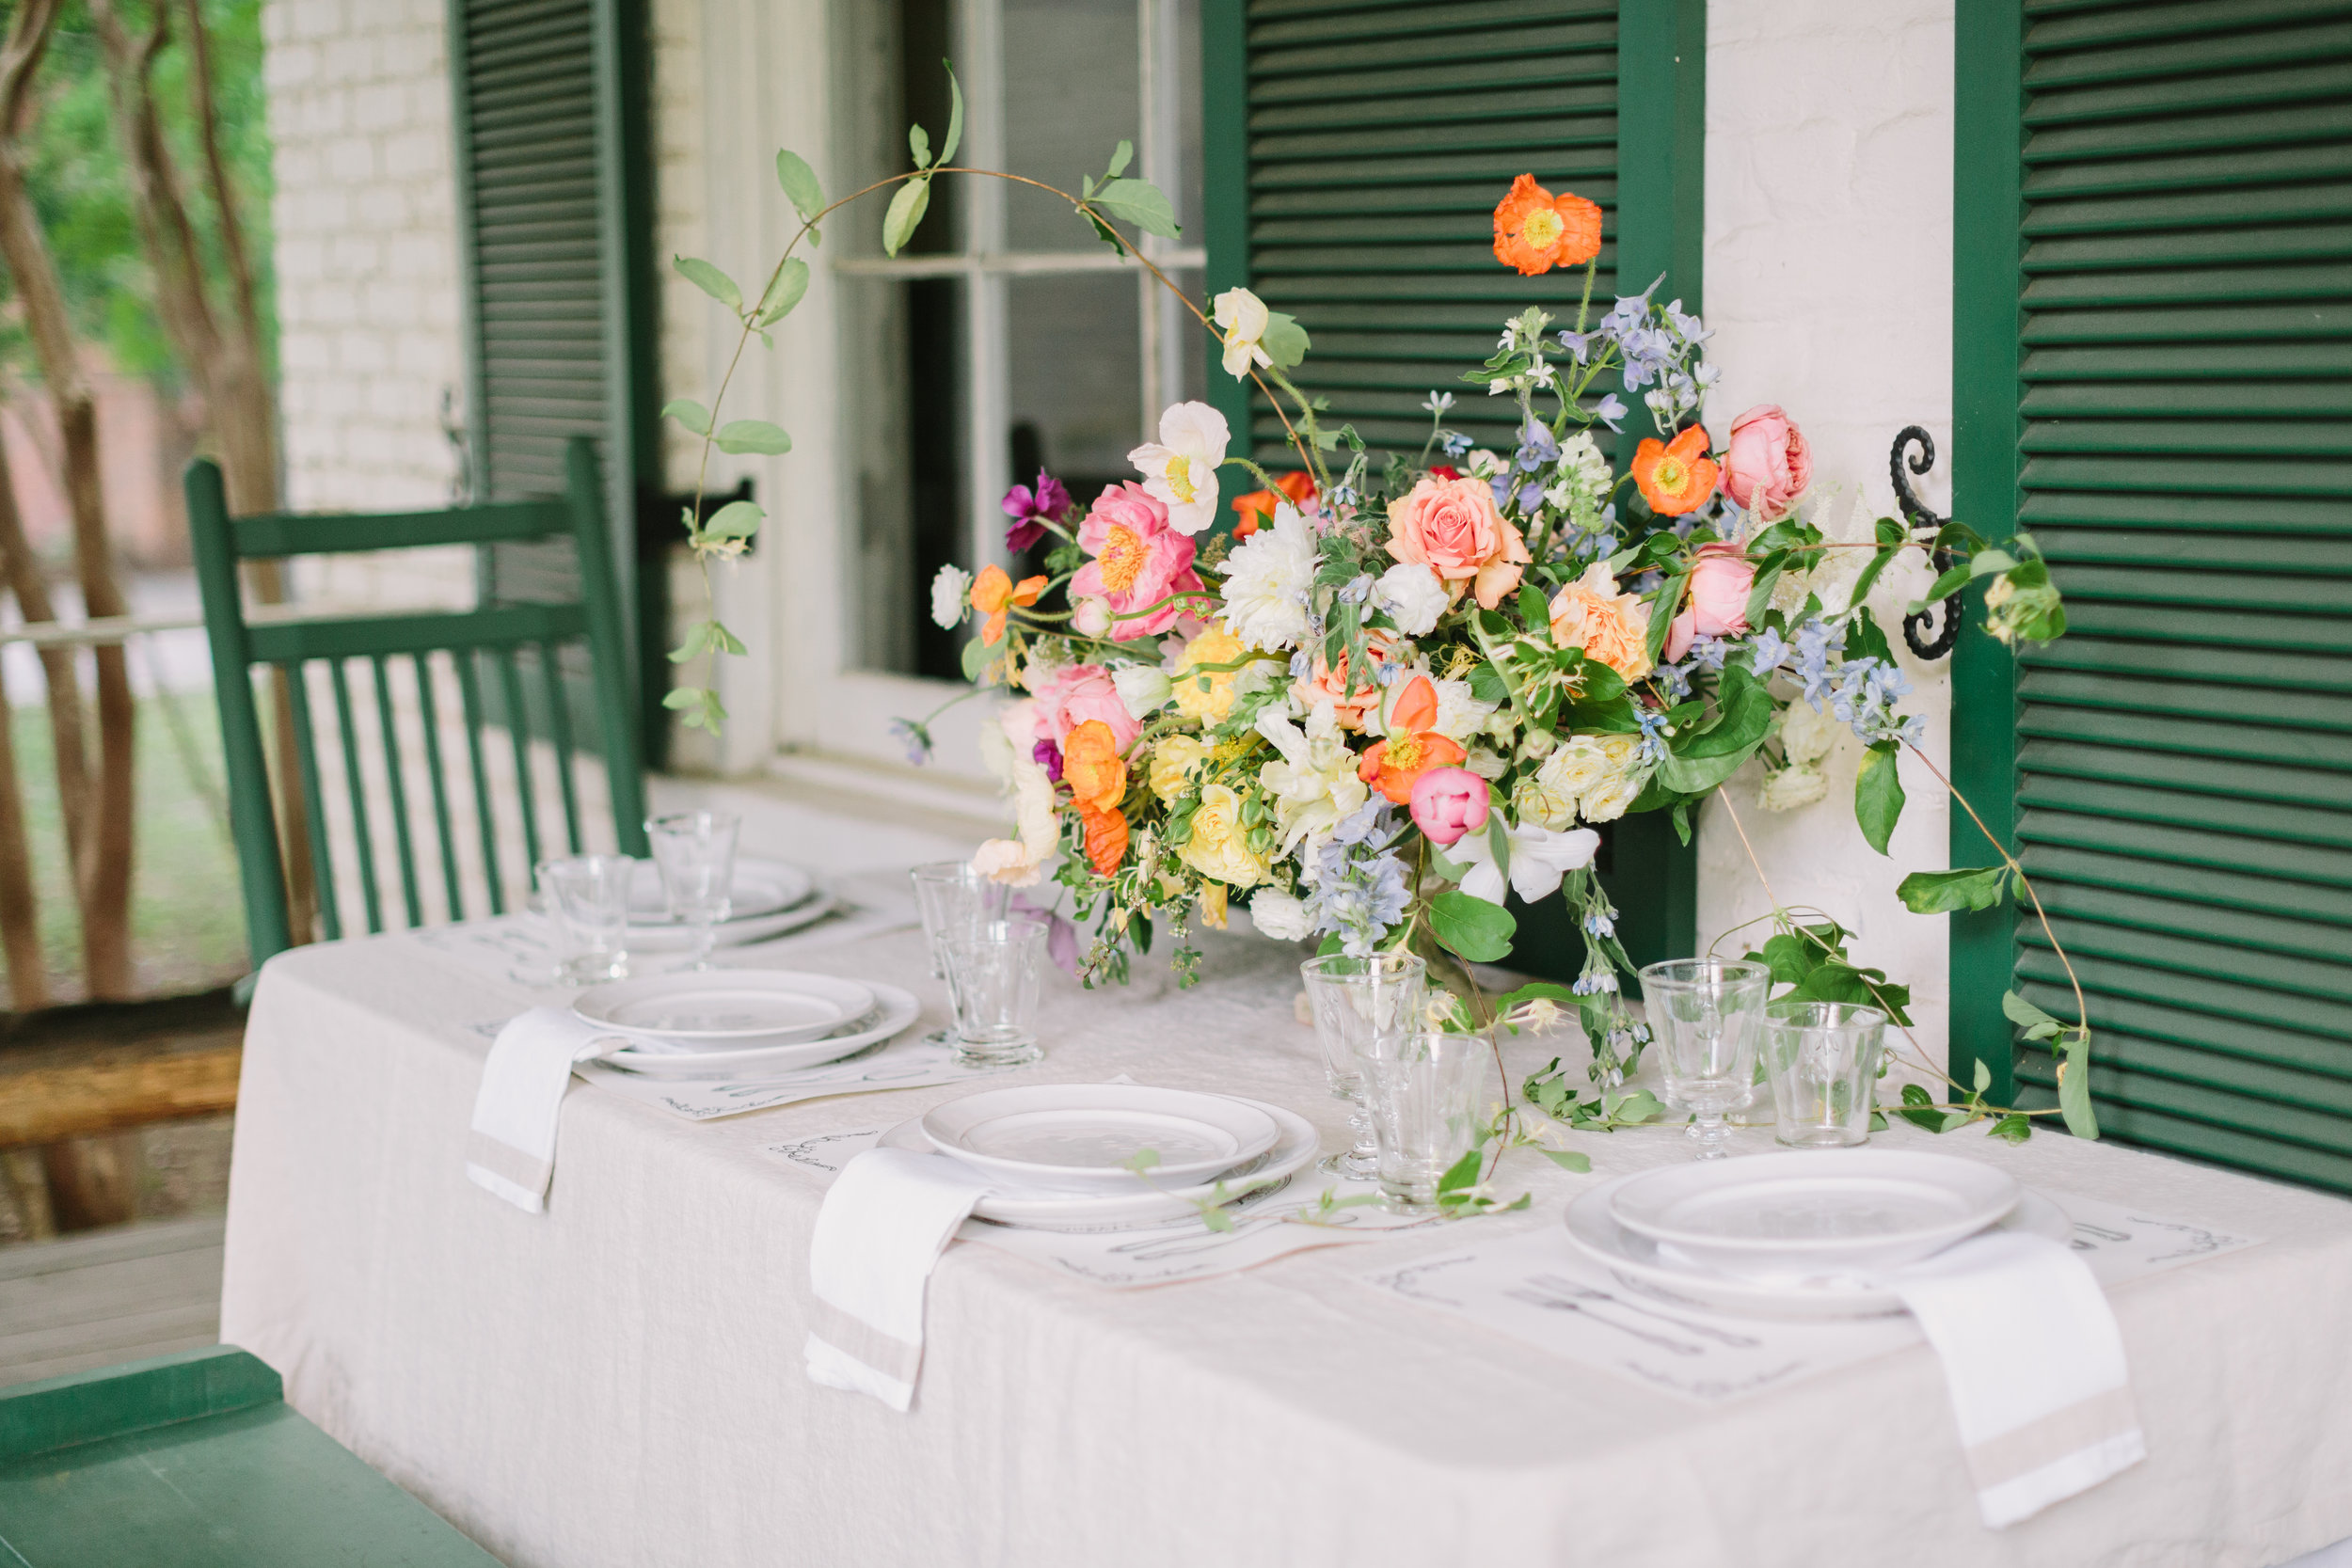 jessica-zimmerman-events-summer-wedding-colorful-table-setting.JPG